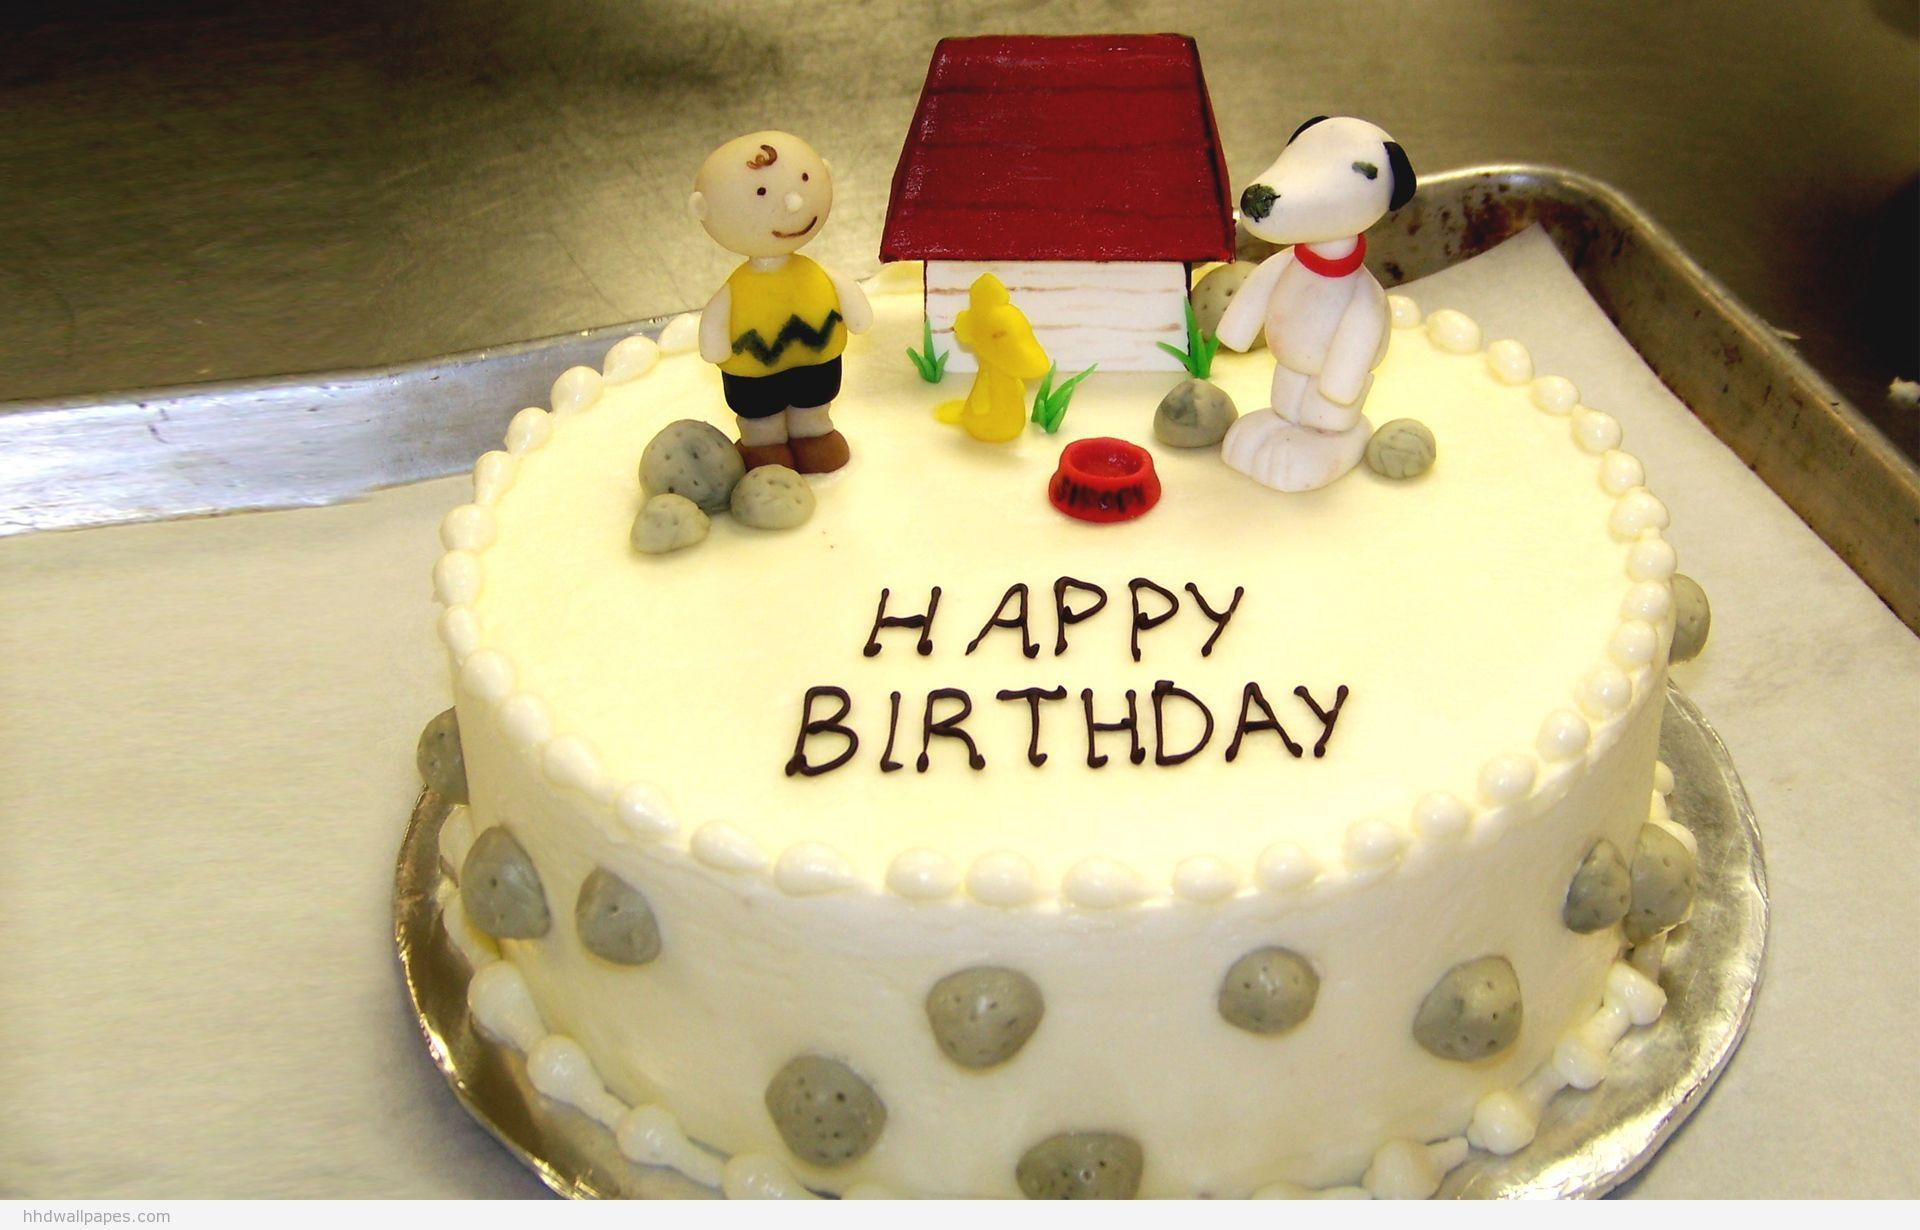 Birthday Cake Pic With Name Huma : Happy Birthday Wallpapers With Name - Wallpaper Cave